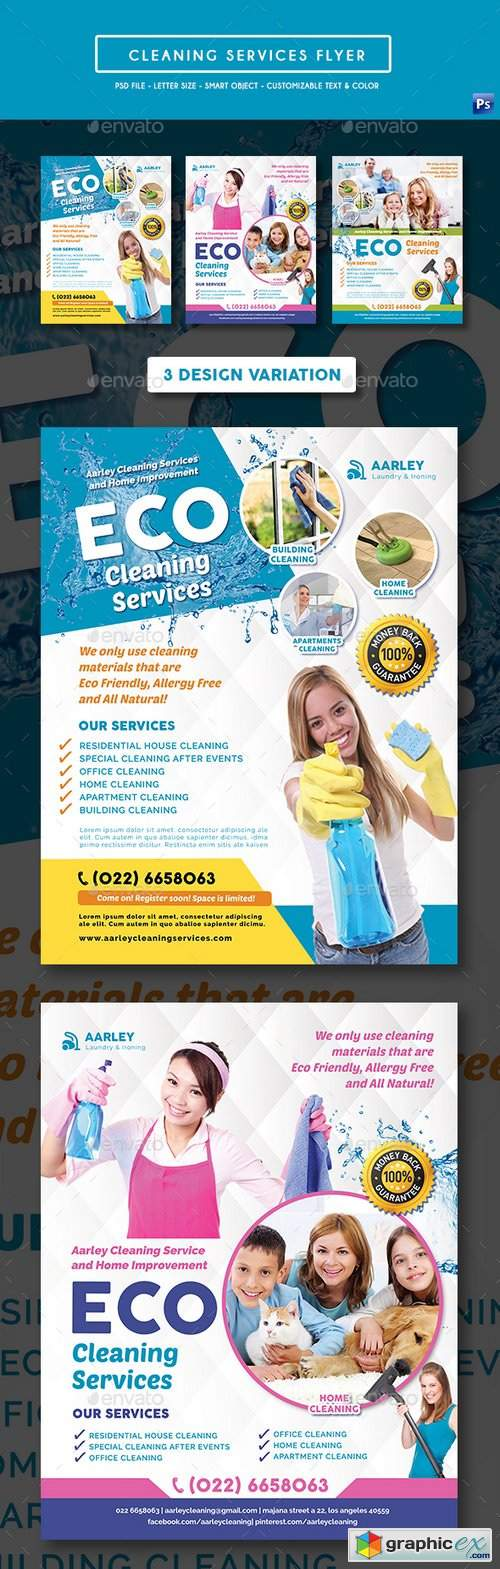 Cleaning Services Flyer 19585464